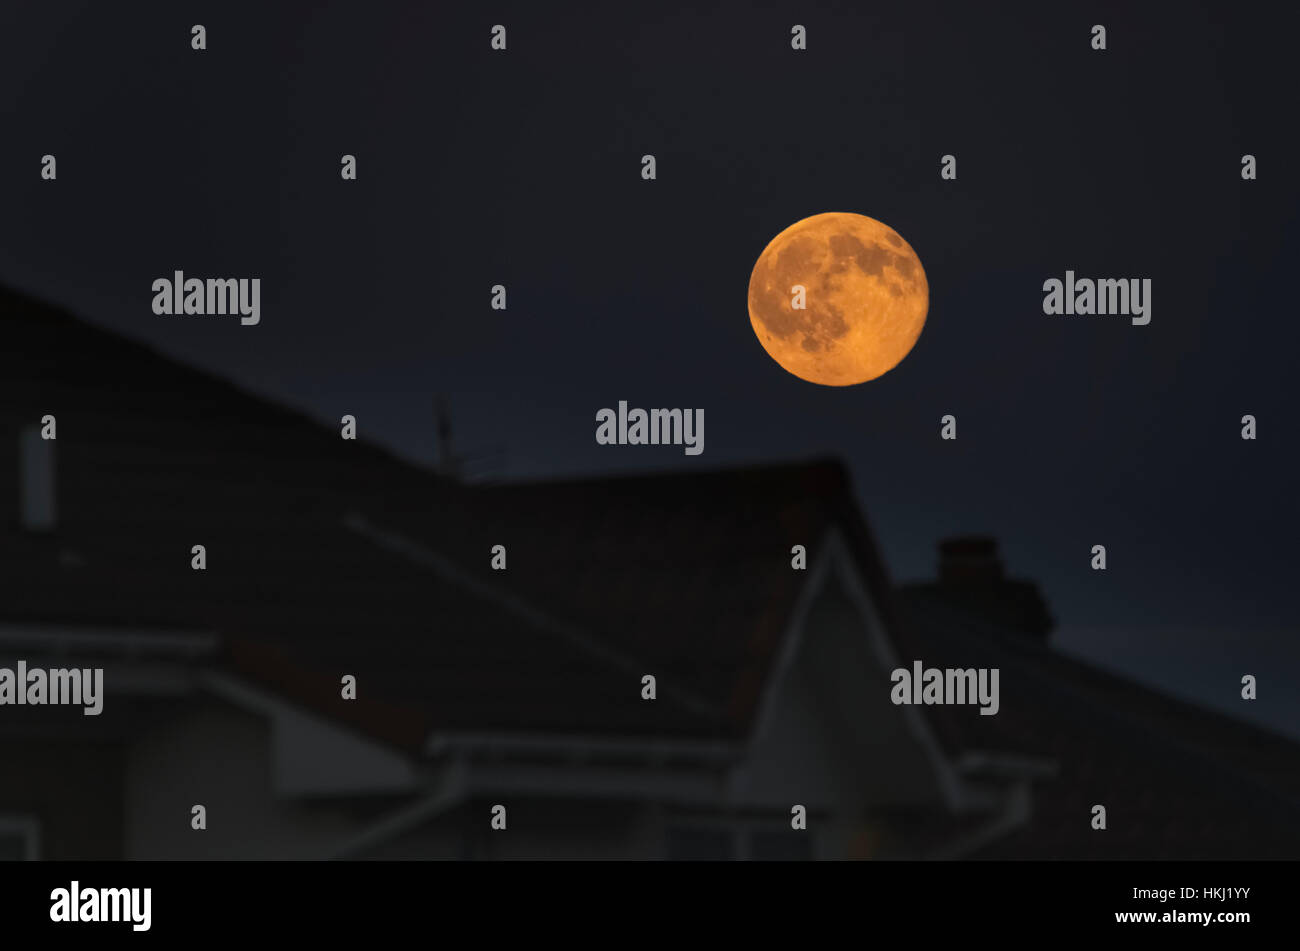 Full harvest moon glowing in the night sky over houses; South Shields, Tyne and Wear, England - Stock Image